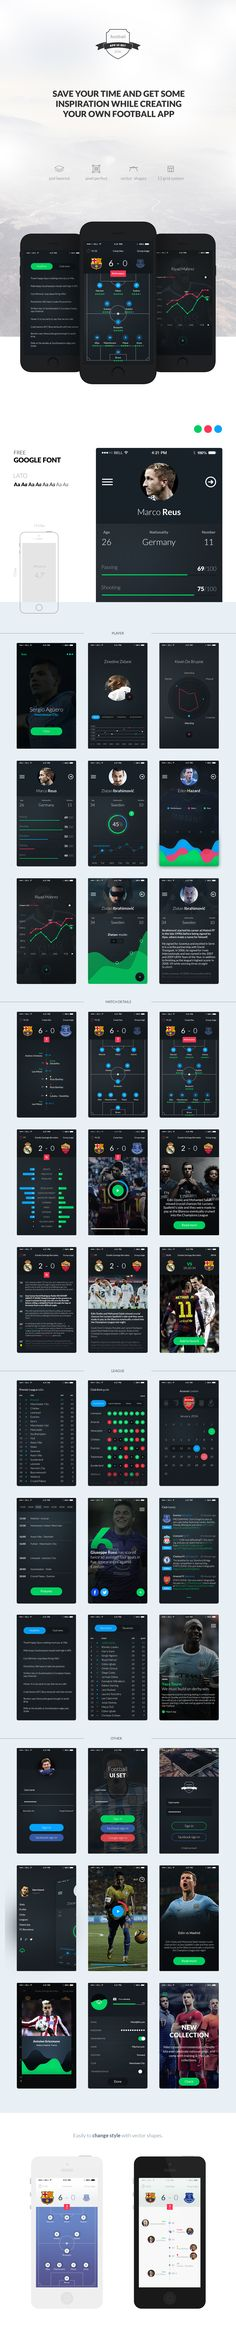 Football APP UI set contains a lot of high quality screens (1334x755px) For iOS. Save your time and get some inspiration while creating your own football mobile apps. The kit was built on a 12 columns grid system, in base on shapes, easy to customization.…